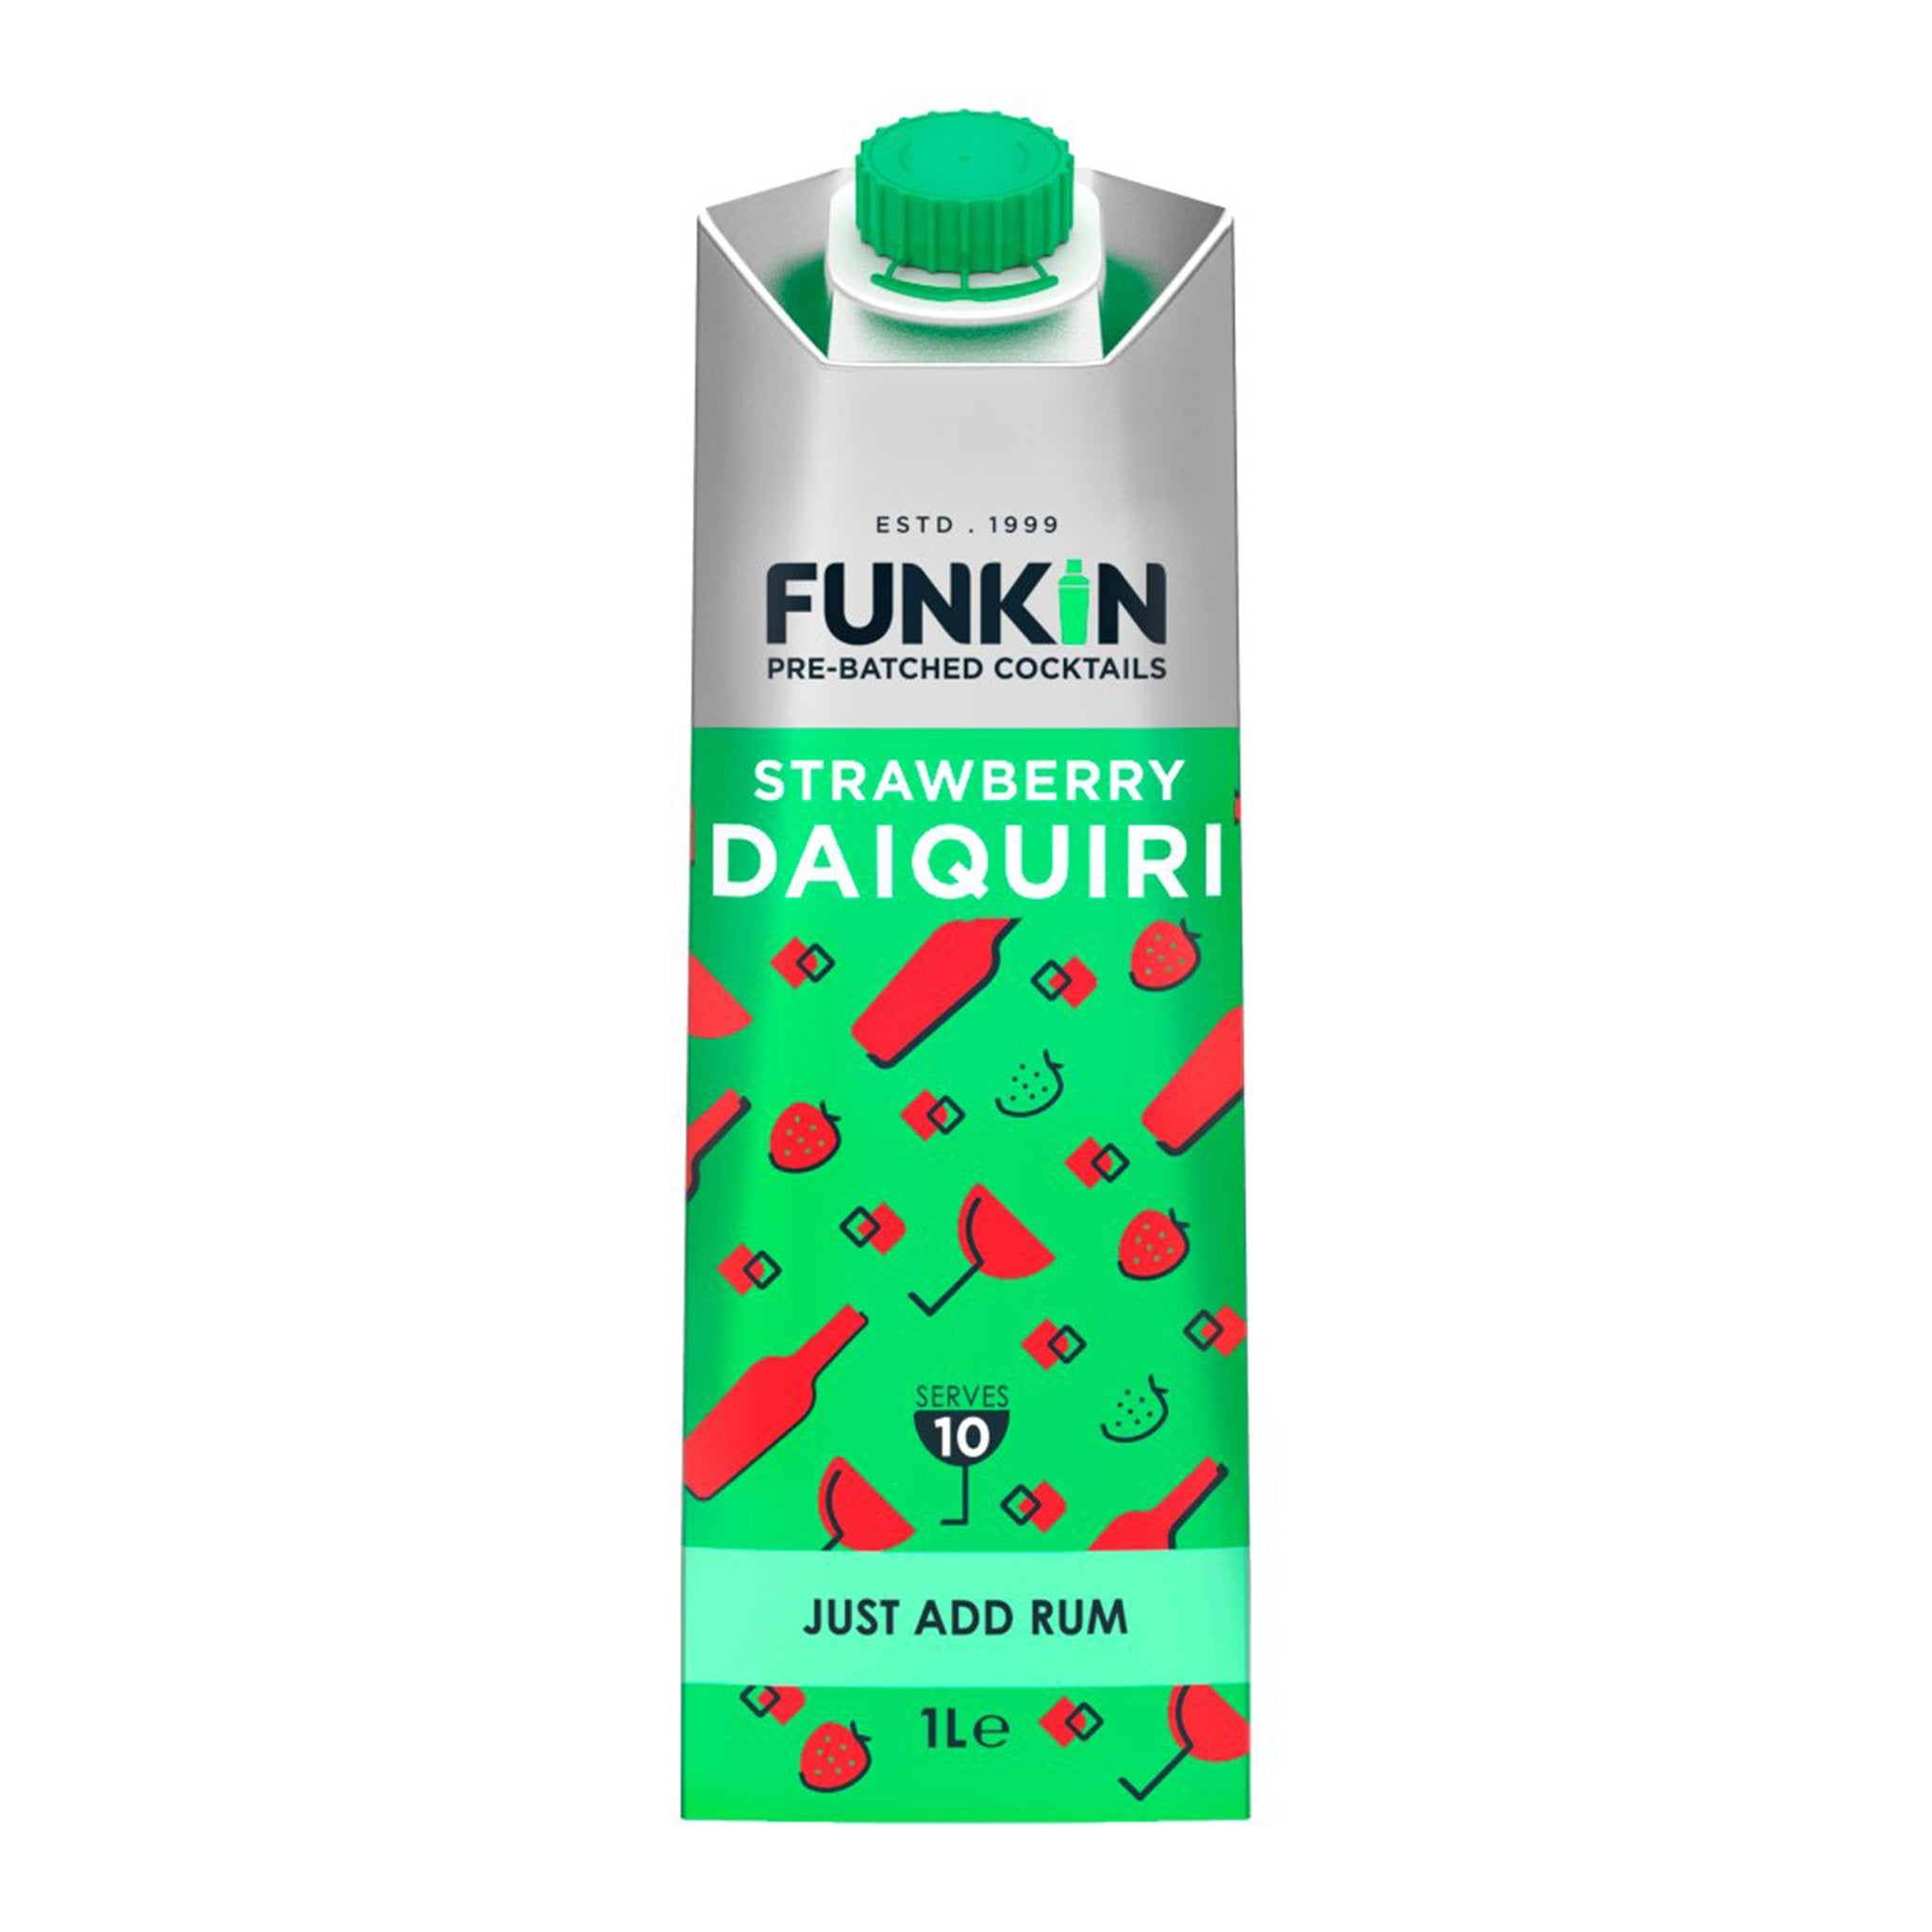 Funkin Pre-Batched Cocktails Strawberry Daiquiri 1L, Cocktail Mixes by Drinks Shop